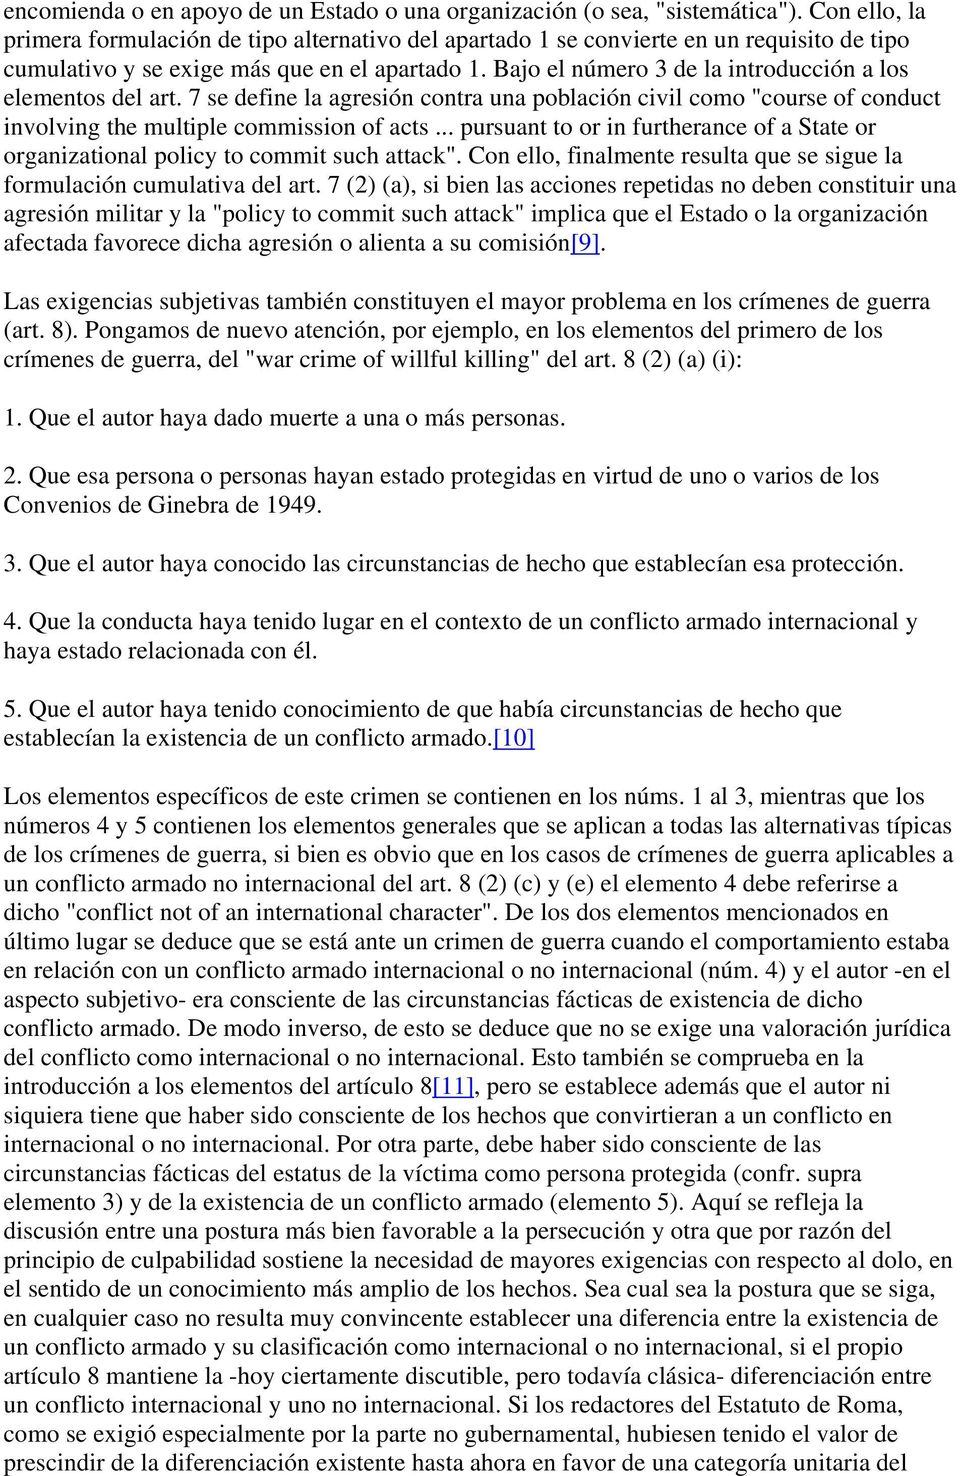 "Bajo el número 3 de la introducción a los elementos del art. 7 se define la agresión contra una población civil como ""course of conduct involving the multiple commission of acts."